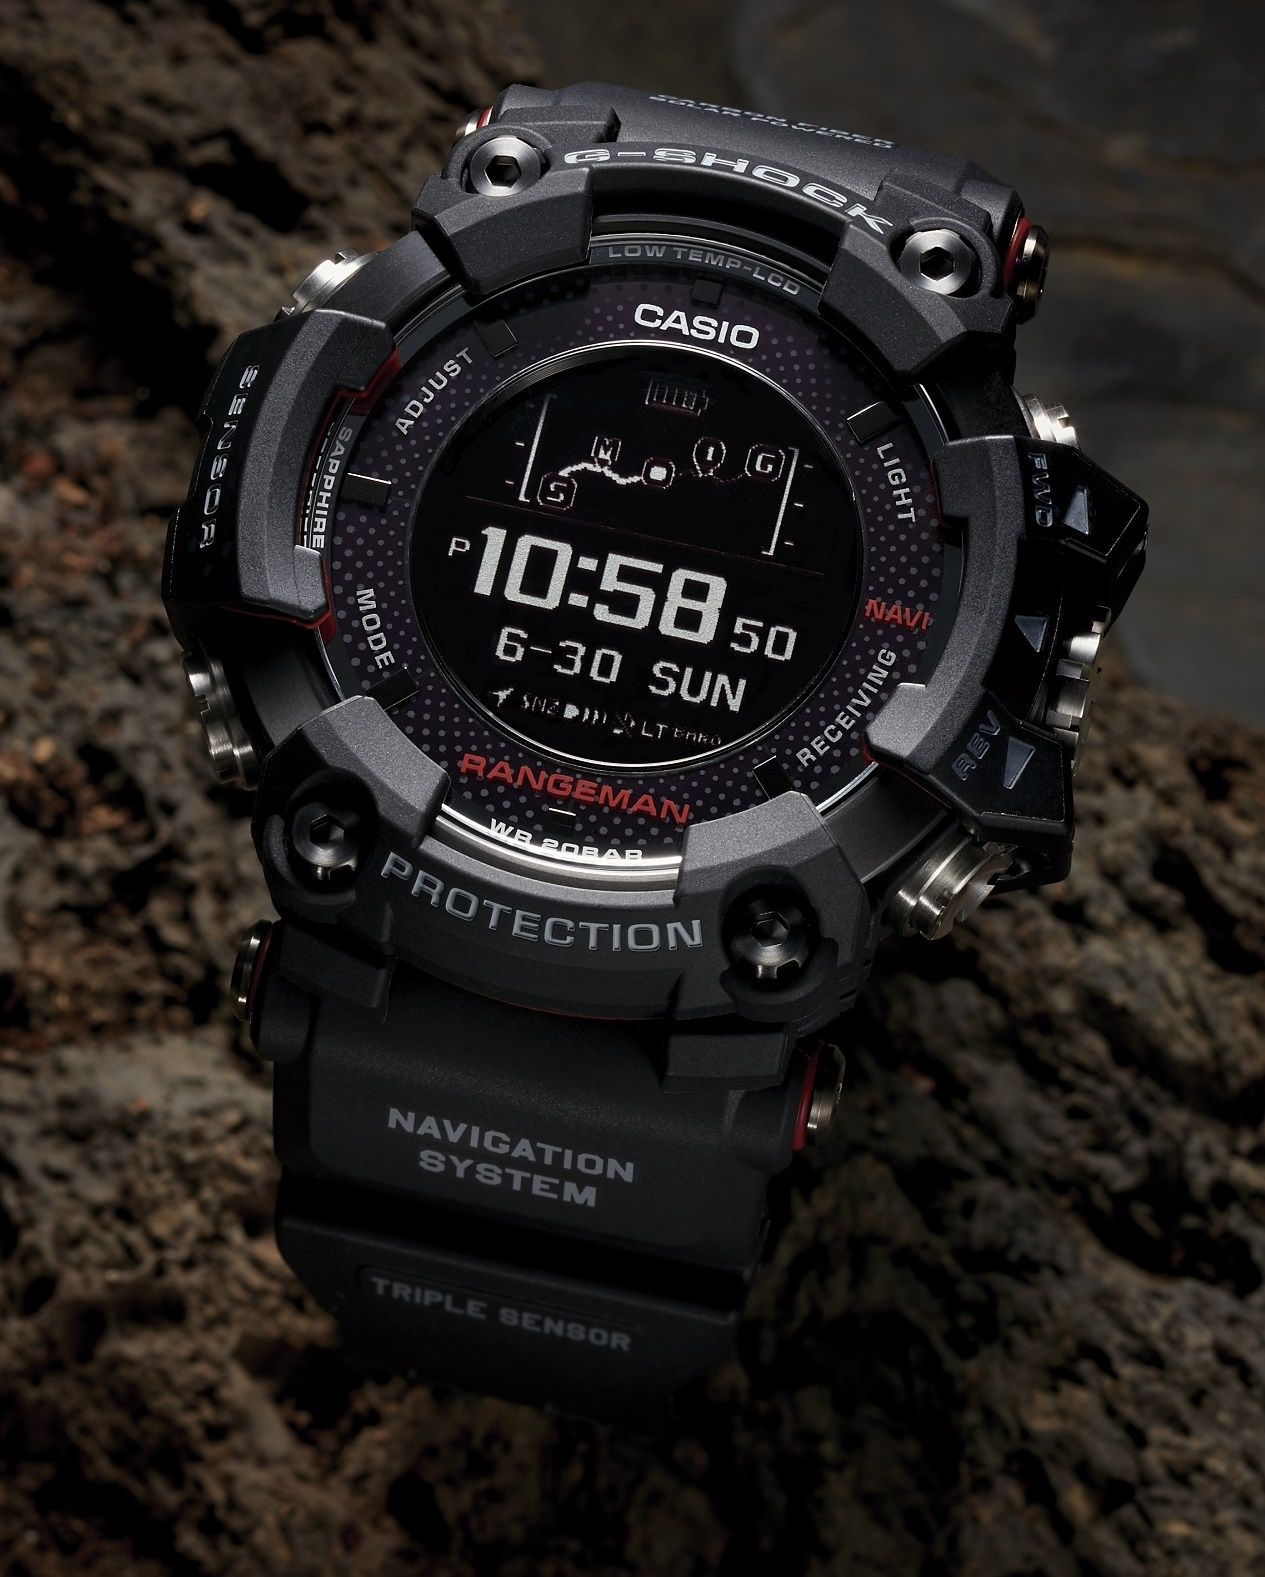 58a3e00da52 New Upgraded   Refined Casio G-Shock Rangeman GPR-B1000 Watch Watch Releases